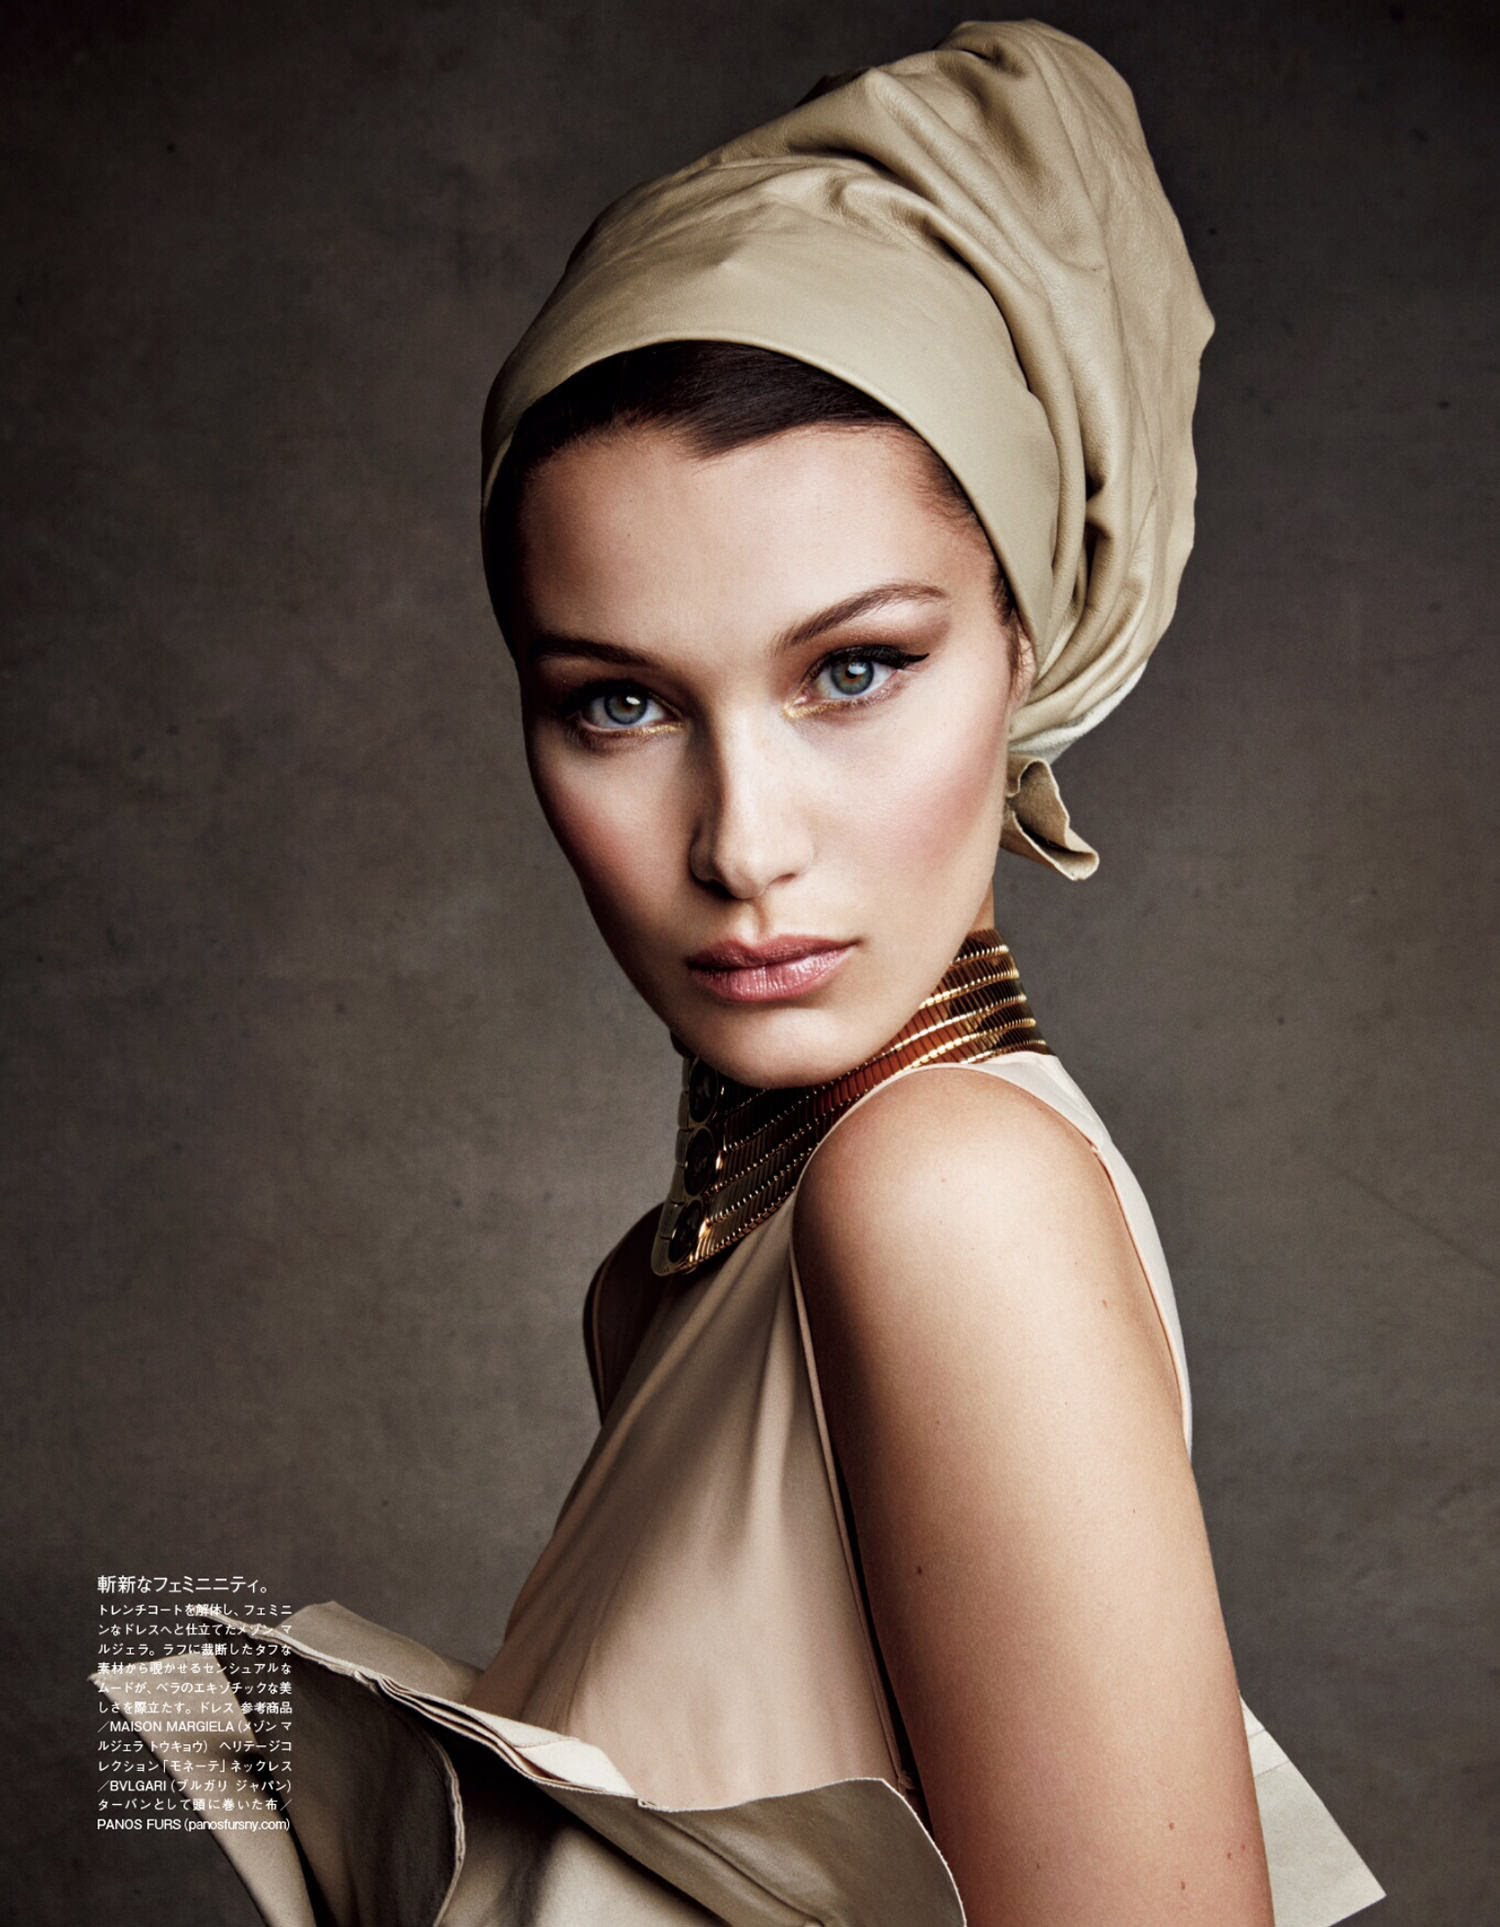 bella-hadid-patrick-demarchelier-vogue-japan- (4).jpg